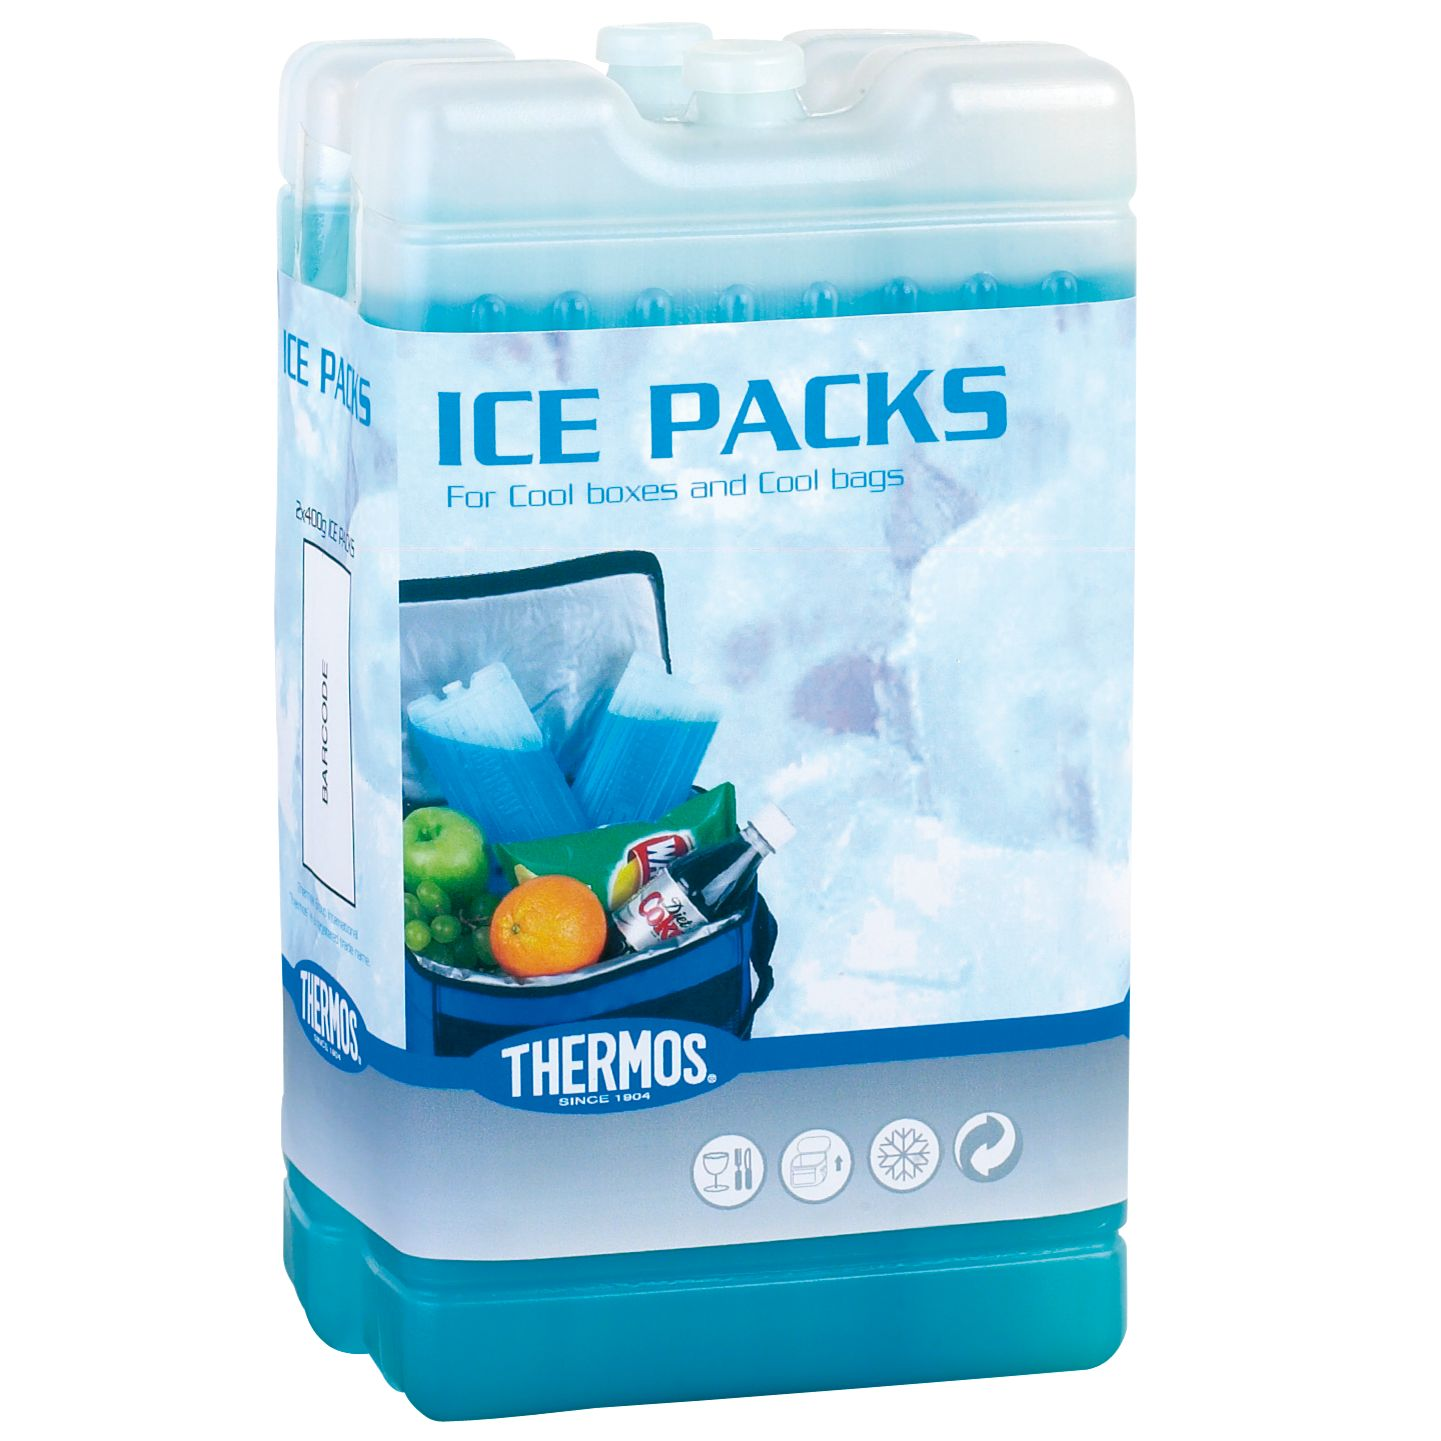 Thermos Ice Pack Twin Pack, 2 x 400